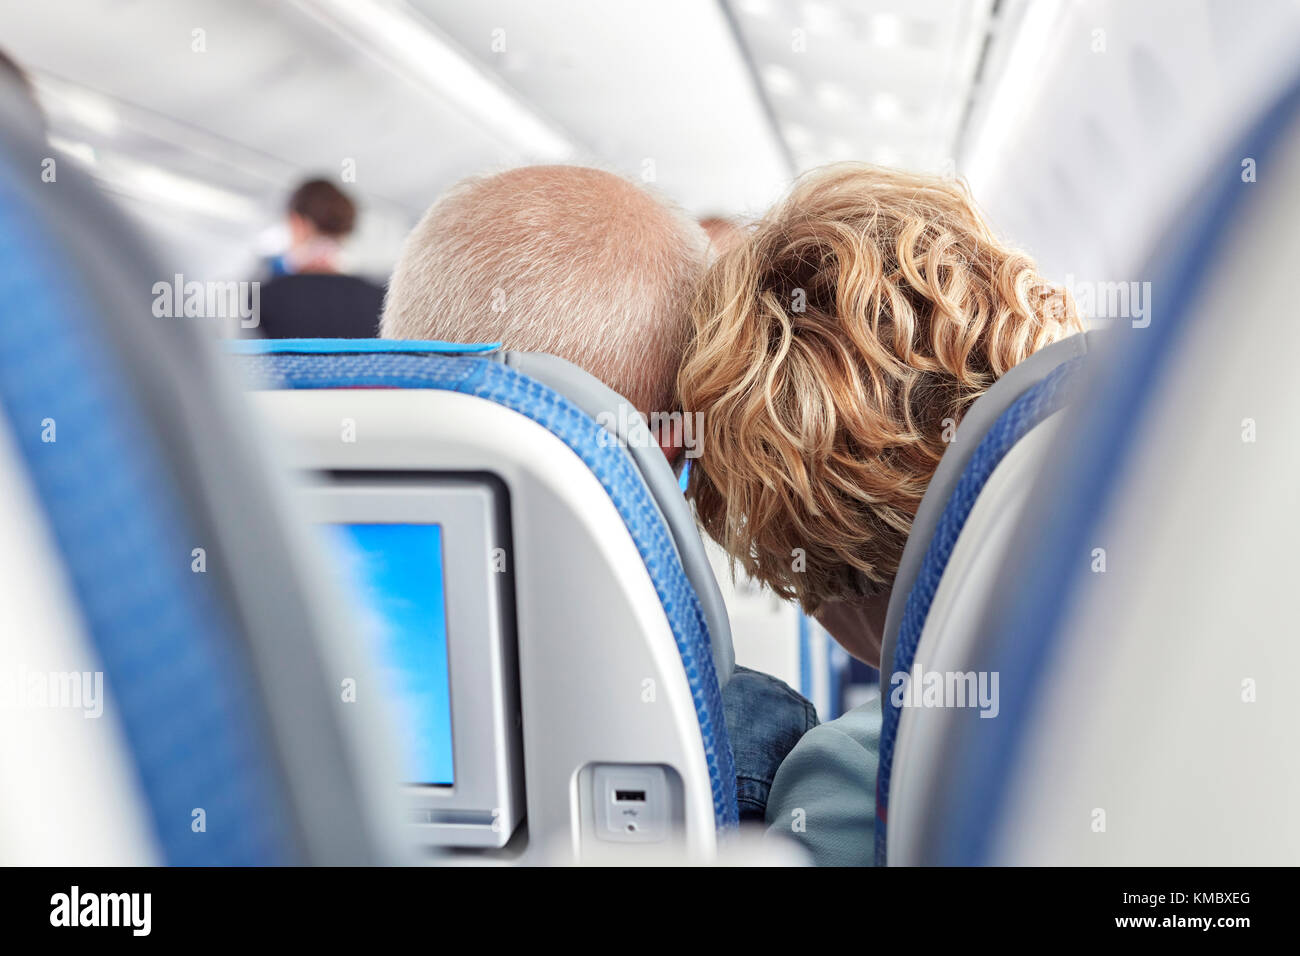 Rear view affectionate mature couple leaning on airplane - Stock Image